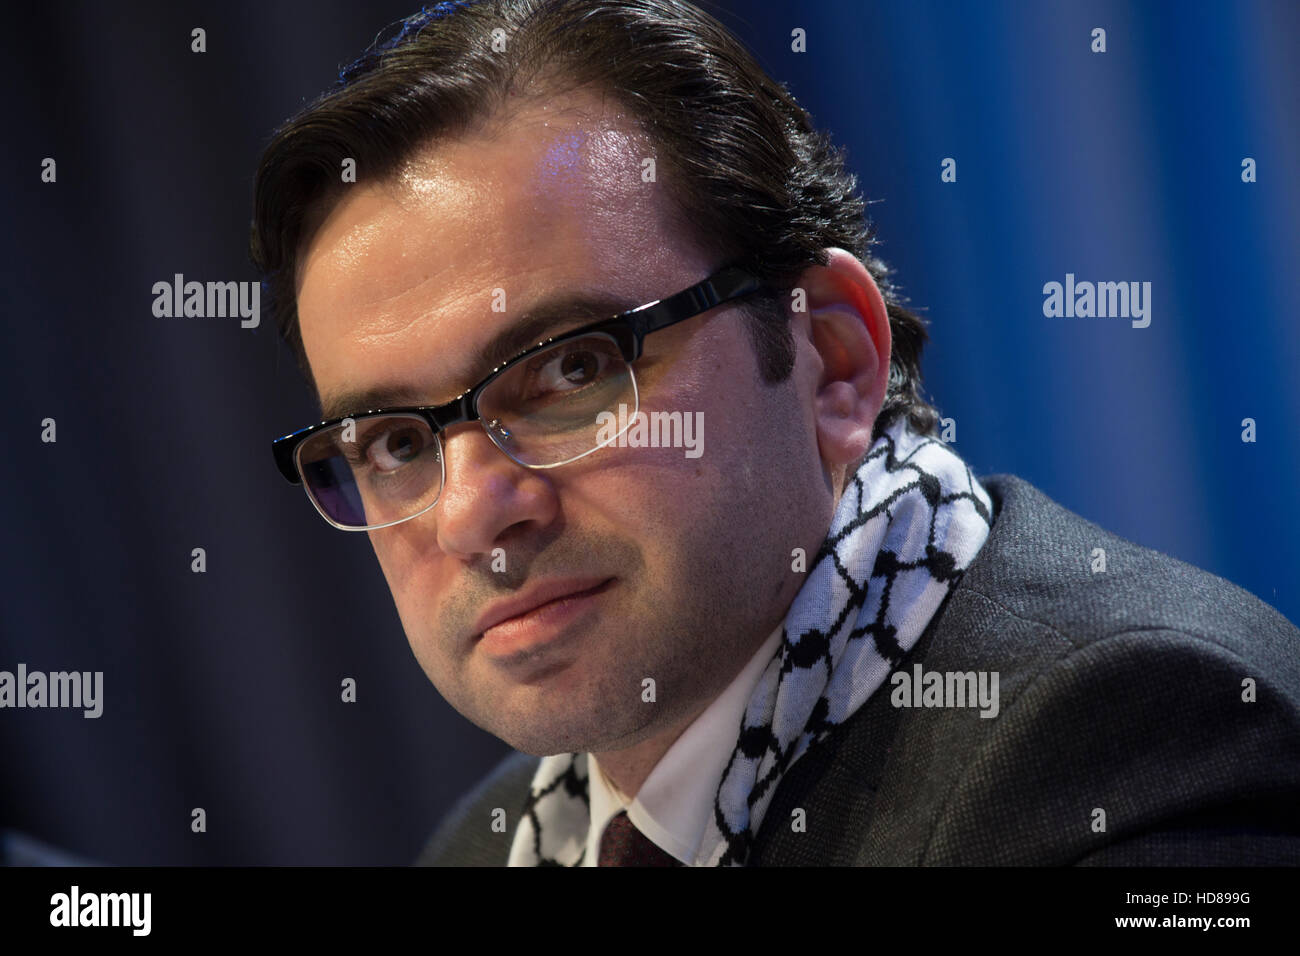 Palestine Minister of Culture Affairs, Dr. Ihab Bseiso during opening Palestine Culture days in Moscow - Stock Image